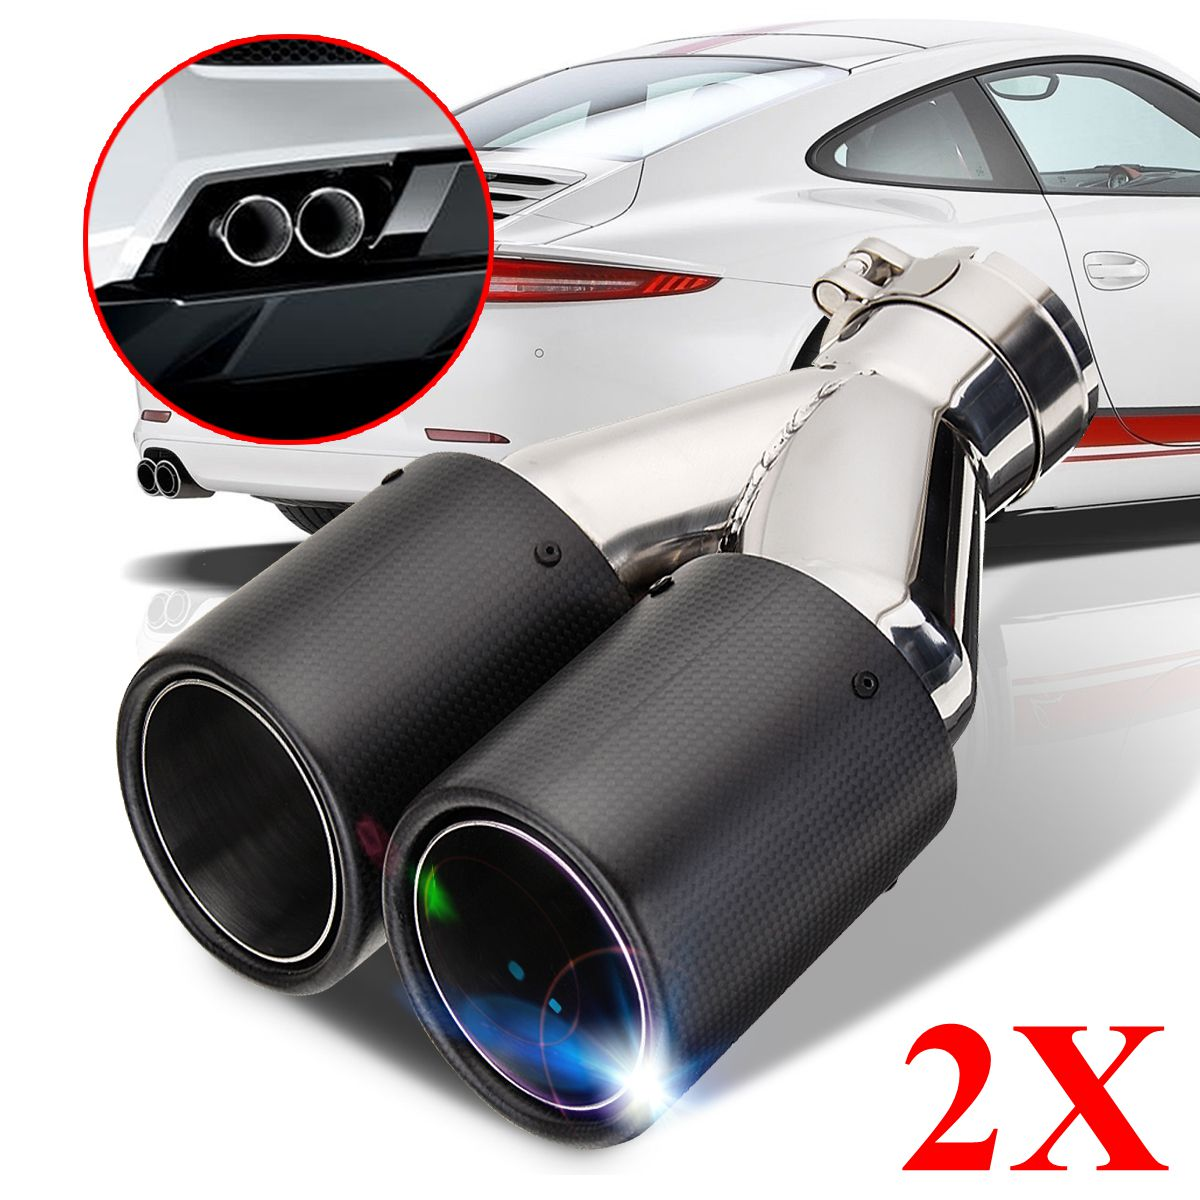 Hot Universal Tip Blue Round Dual-Outlet Stainless Steel Exhaust Muffler Dual Pipe Chrome Trim Modified Car Rear Tail Throat Lin